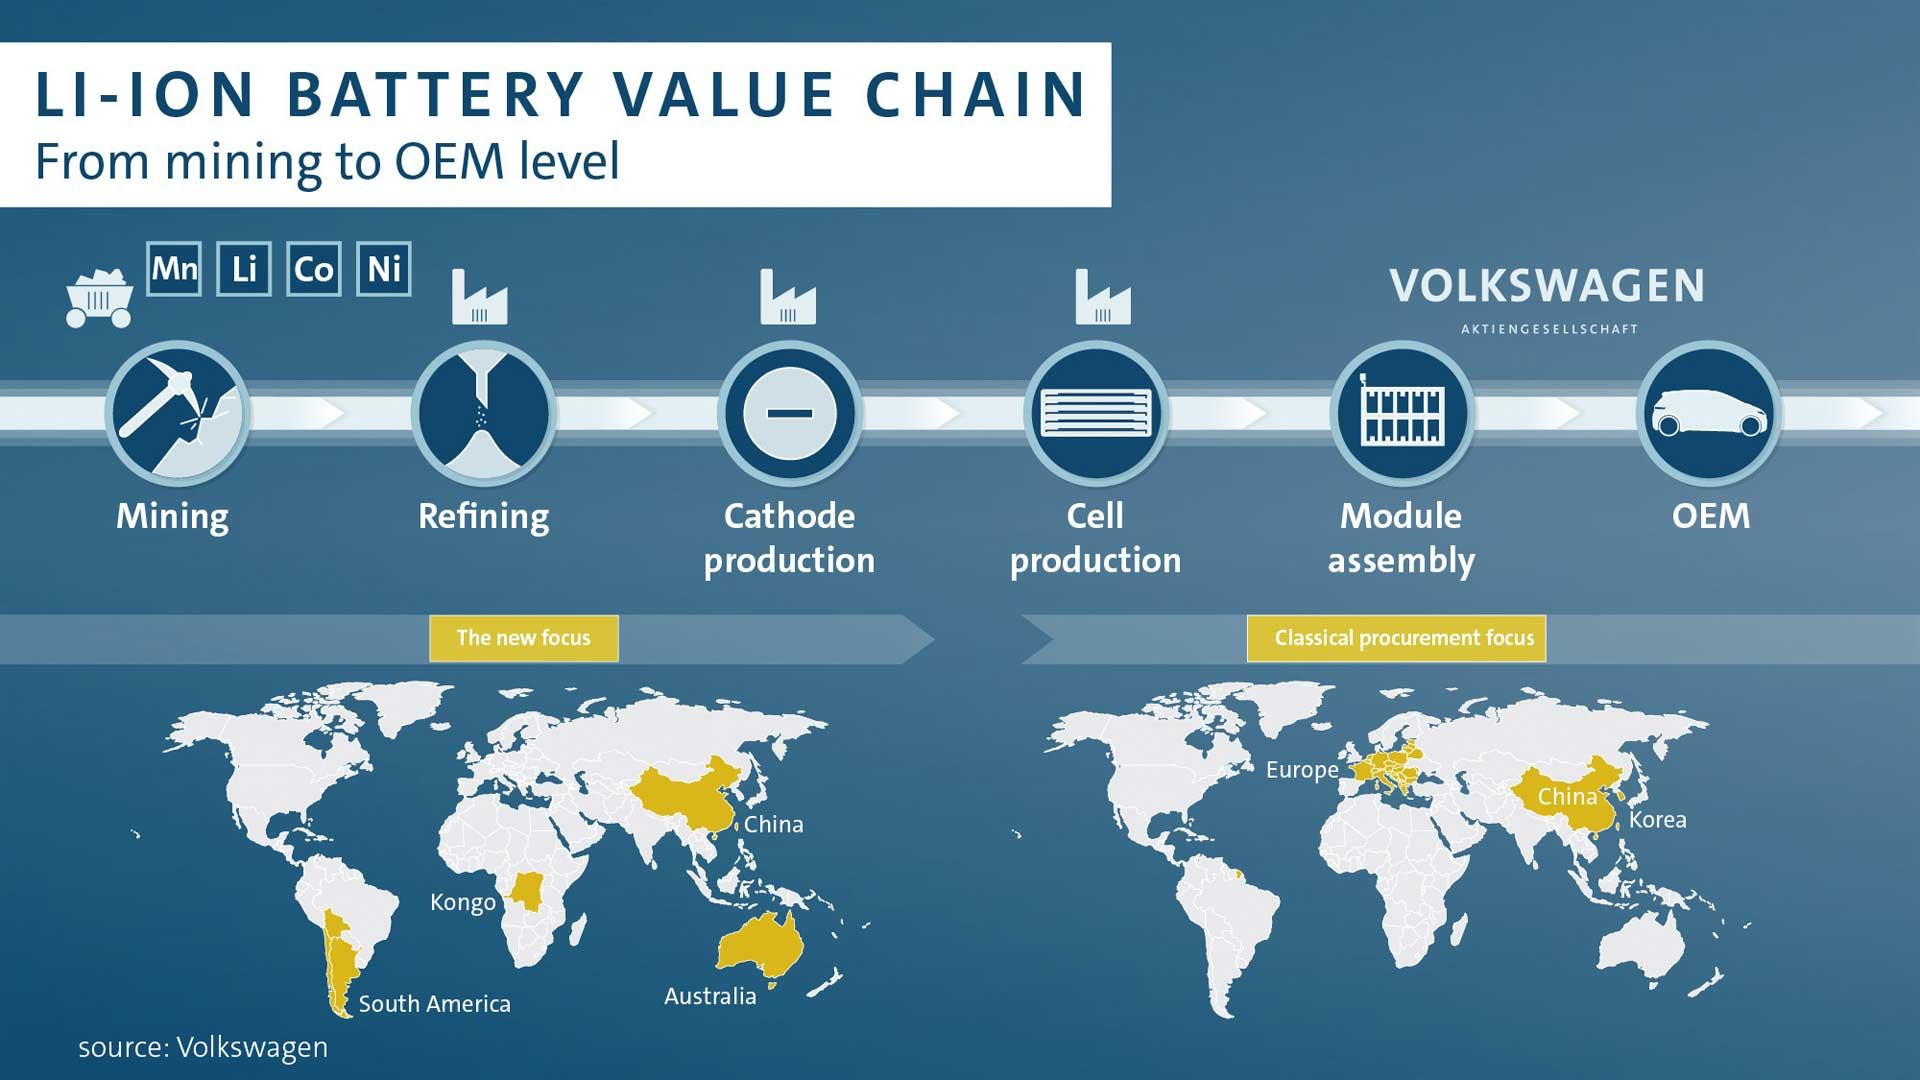 Volkswagen-secures-lithium-supply-from-mining-to-OEM-level